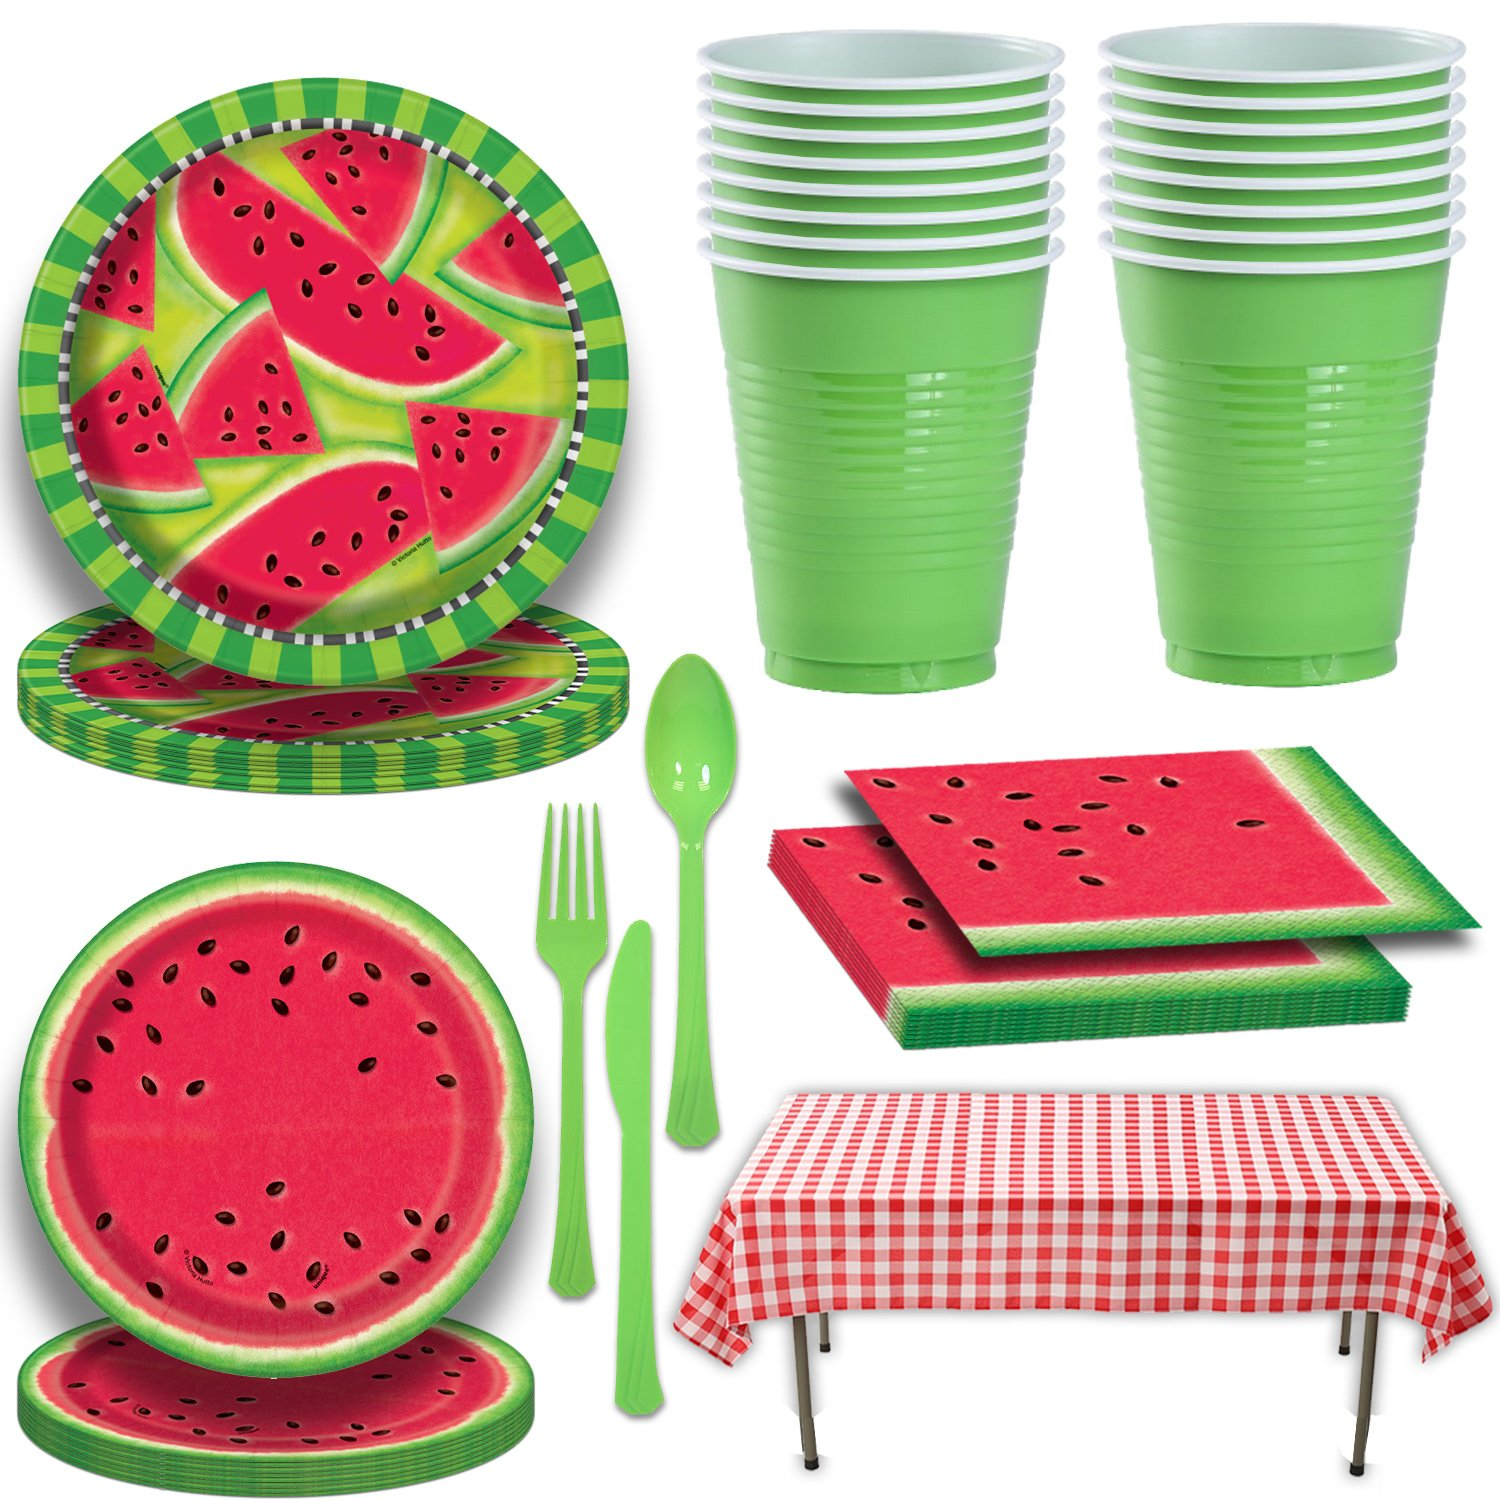 Picnic Watermelon Tableware for 16. Large and Small Plates, Napkins, Red Gingham Tablecloth, Green Cutlery and Party Cups. Decorated Party Supplies for Outdoor, Summer, Fruit, Barbecue Theme and More